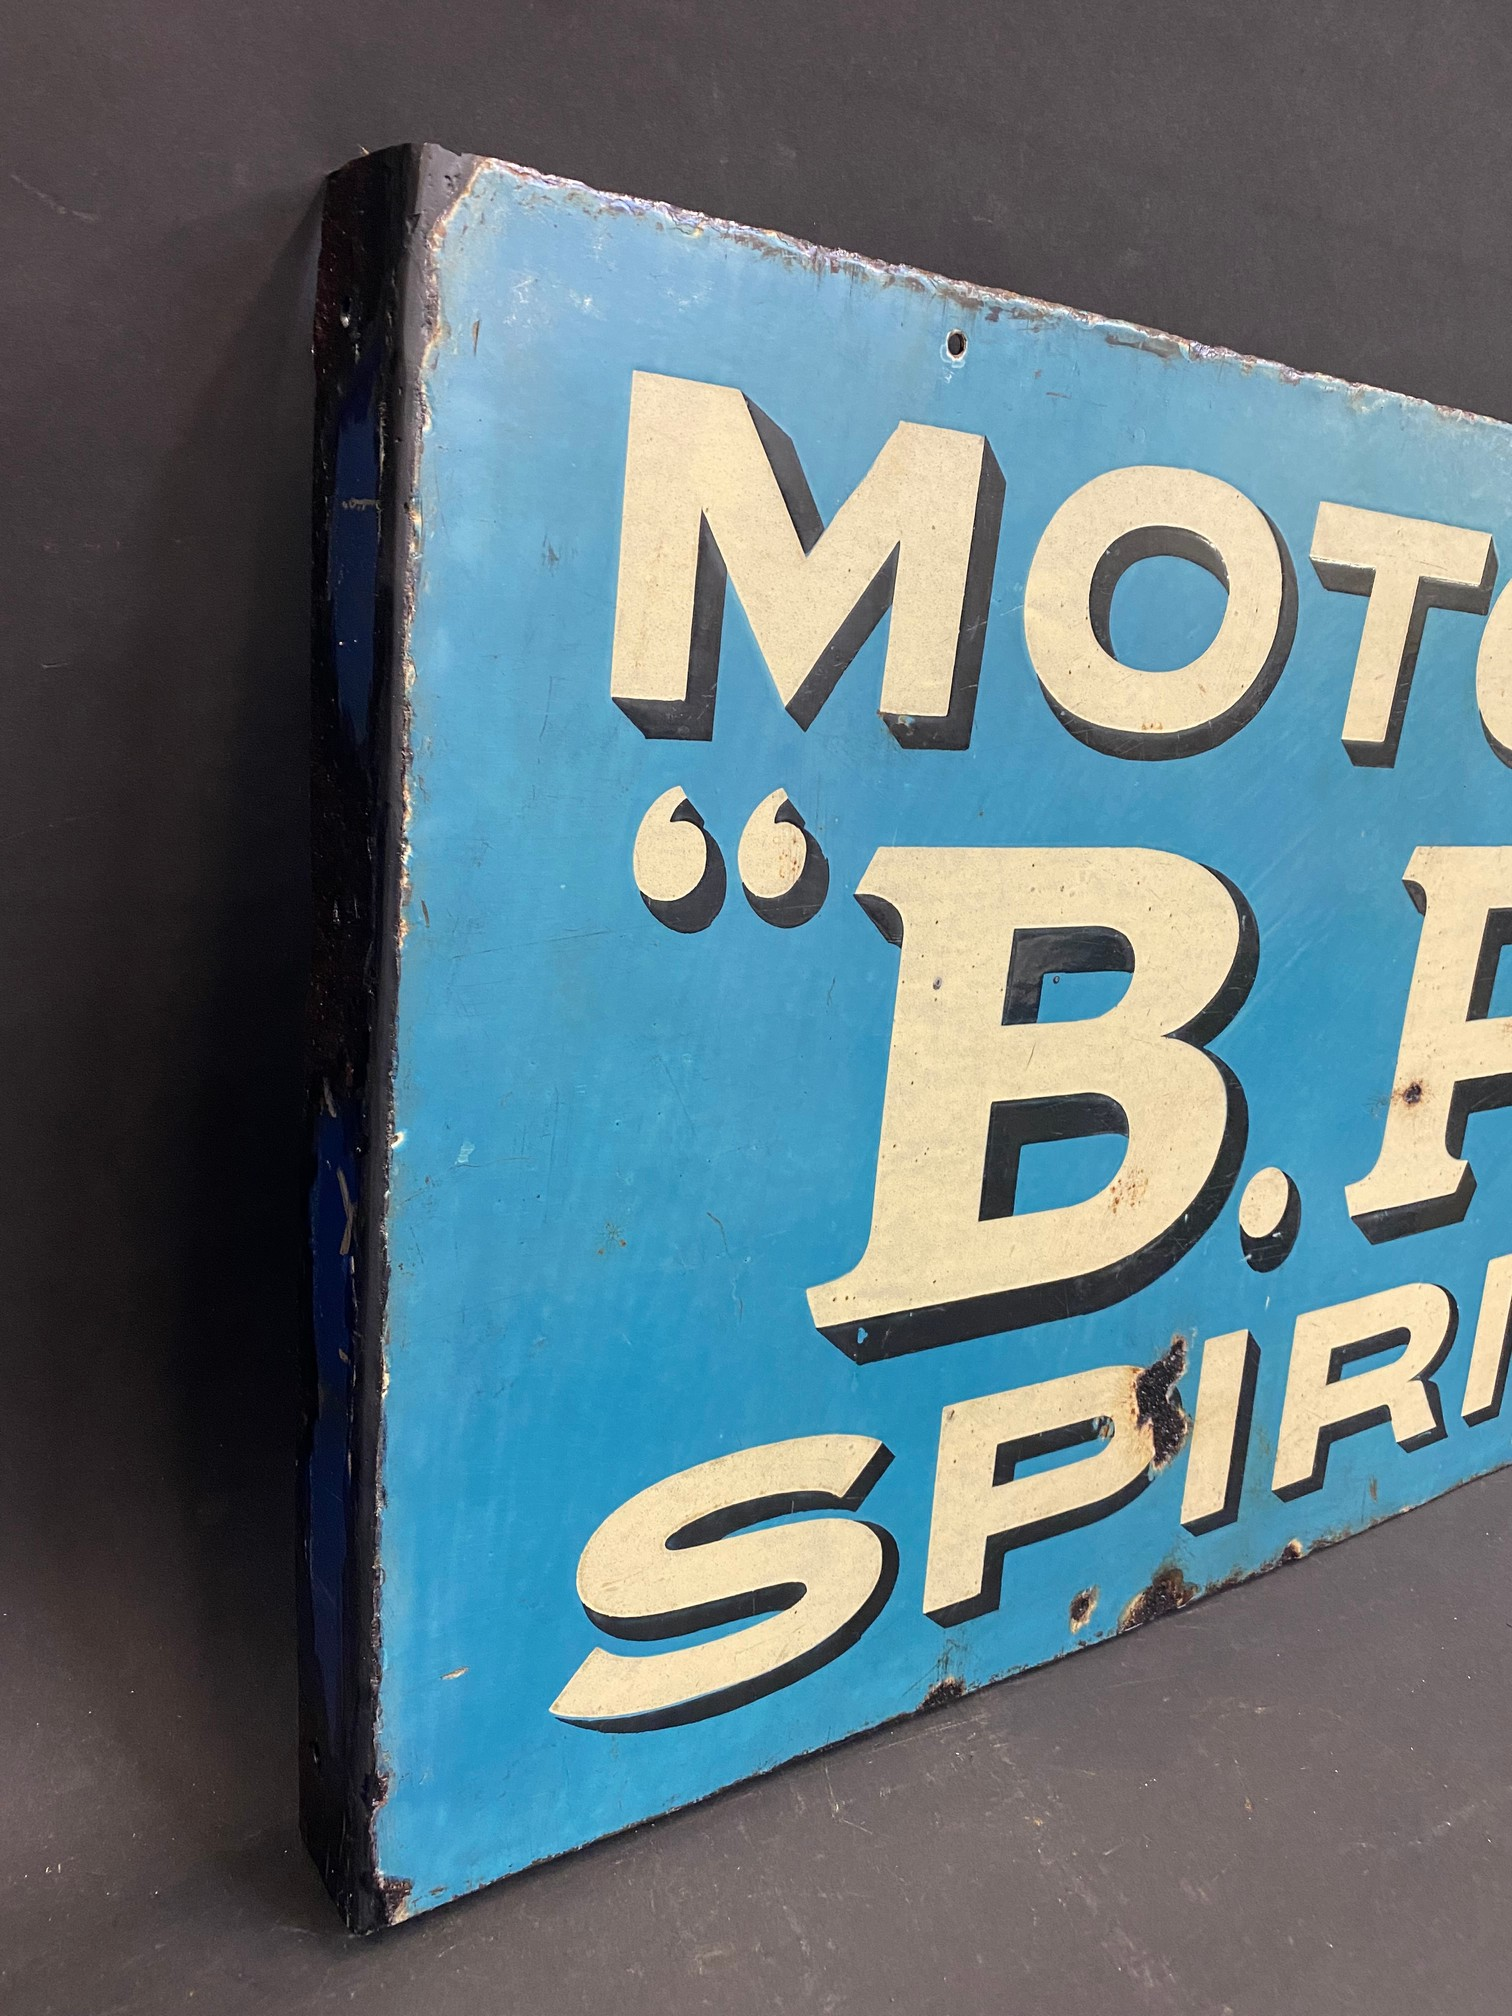 An early and rarely seen B.P. Motor Spirit double sided enamel sign with hanging flange (re- - Image 5 of 5